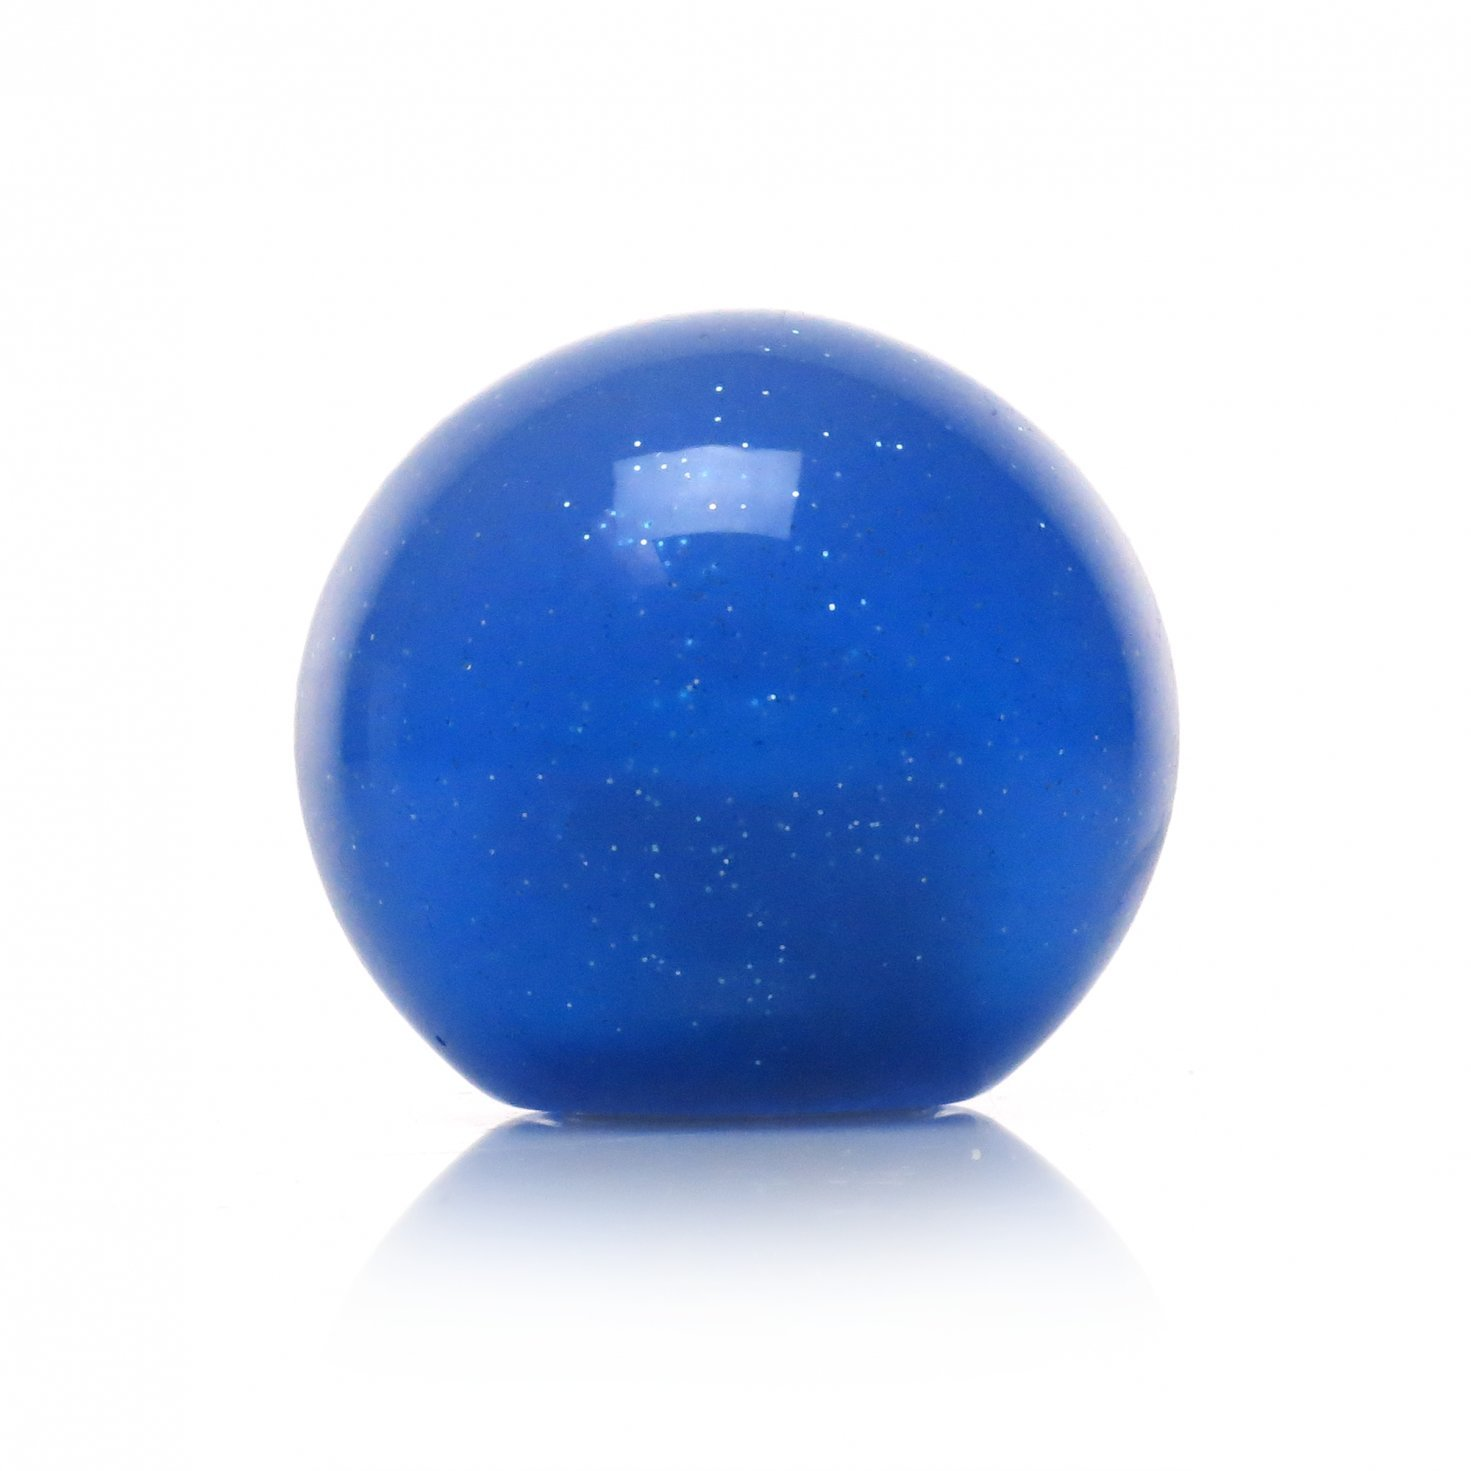 American Shifter 20665 Blue Metal Flake Shift Knob with 16mm x 1.5 Insert Black Dotted Arrow Up